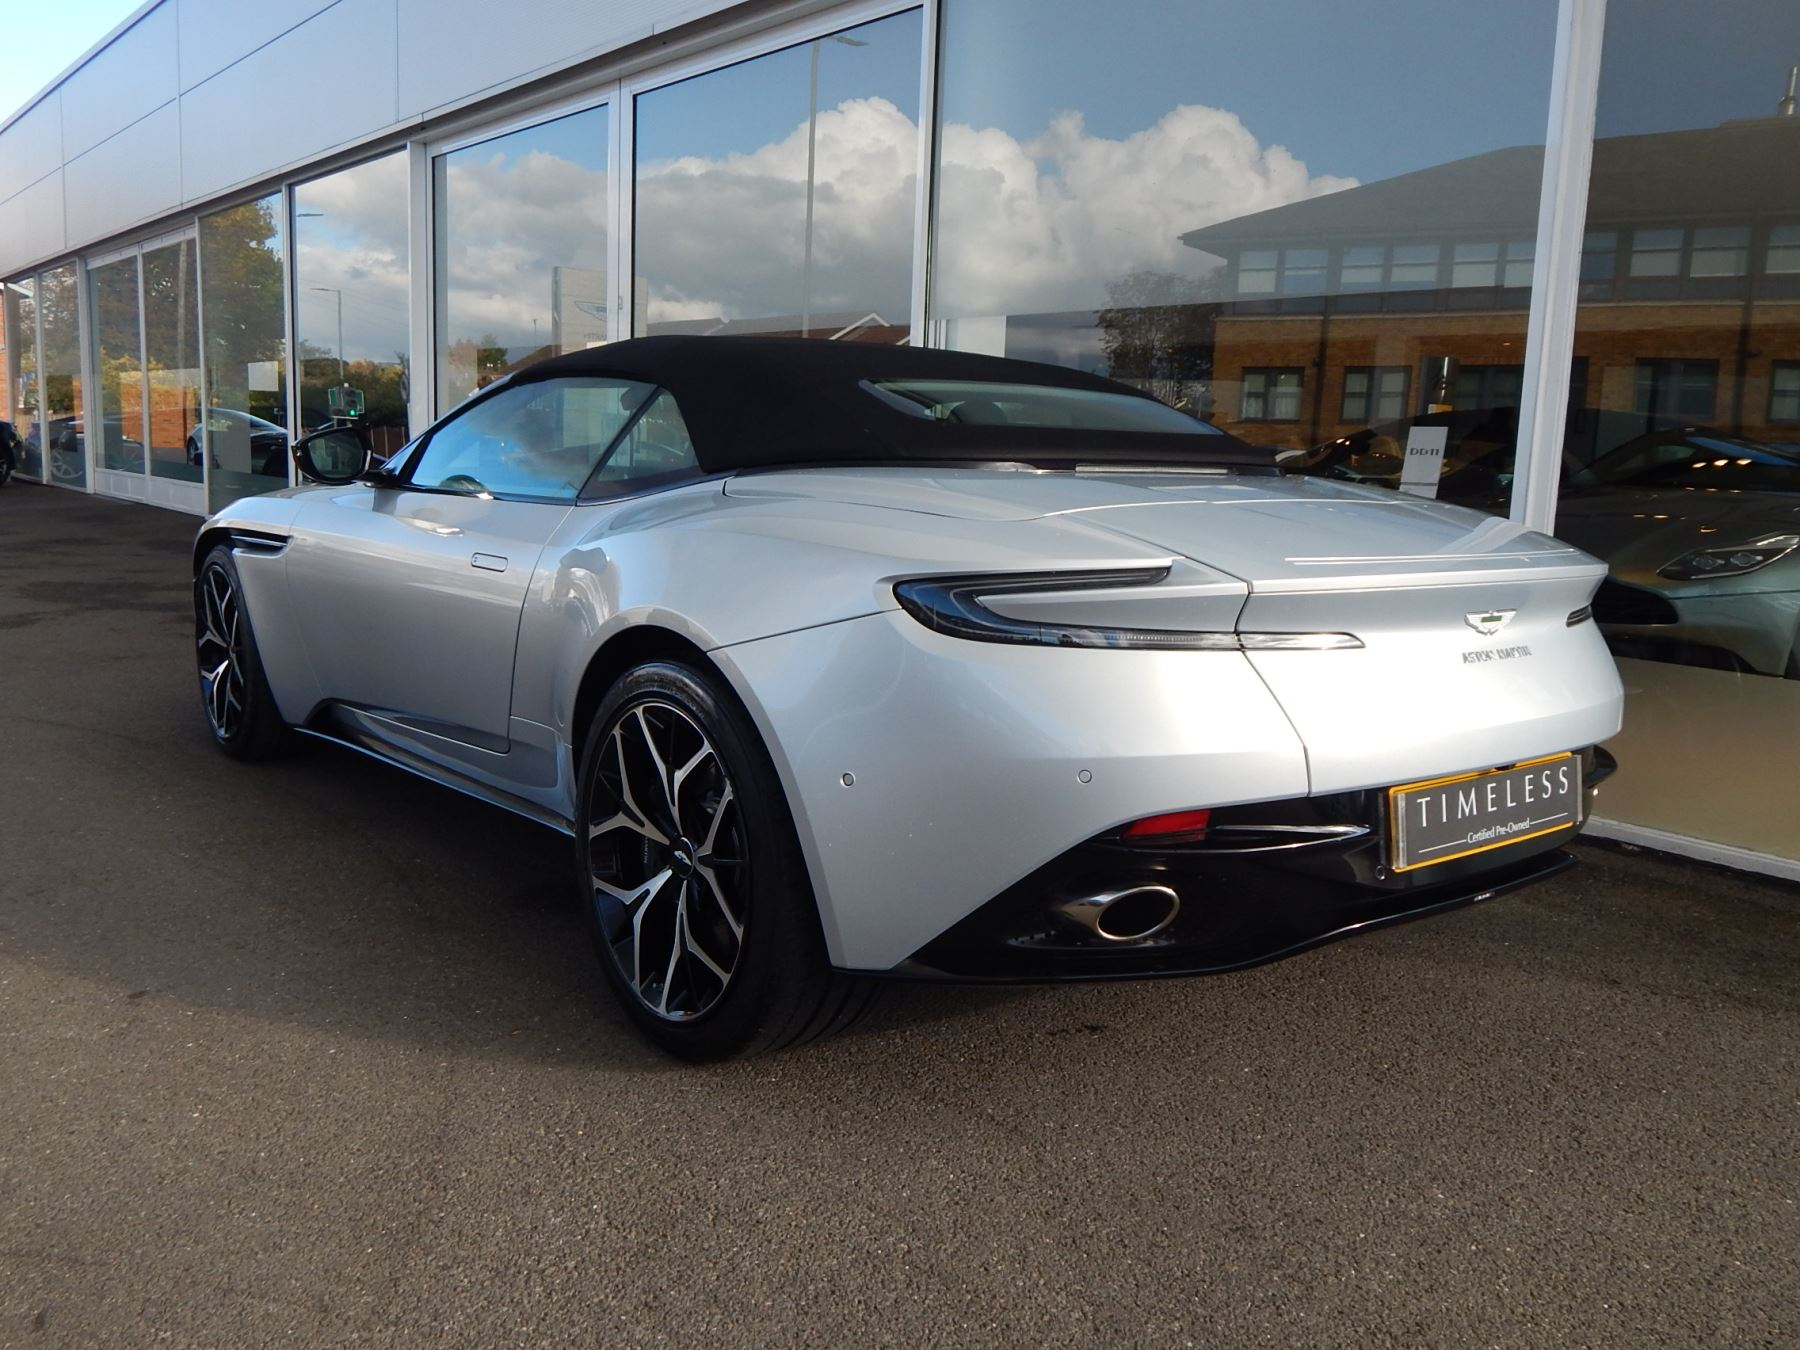 Aston Martin DB11 Volante 4.0 V8 Twin Turbo image 27